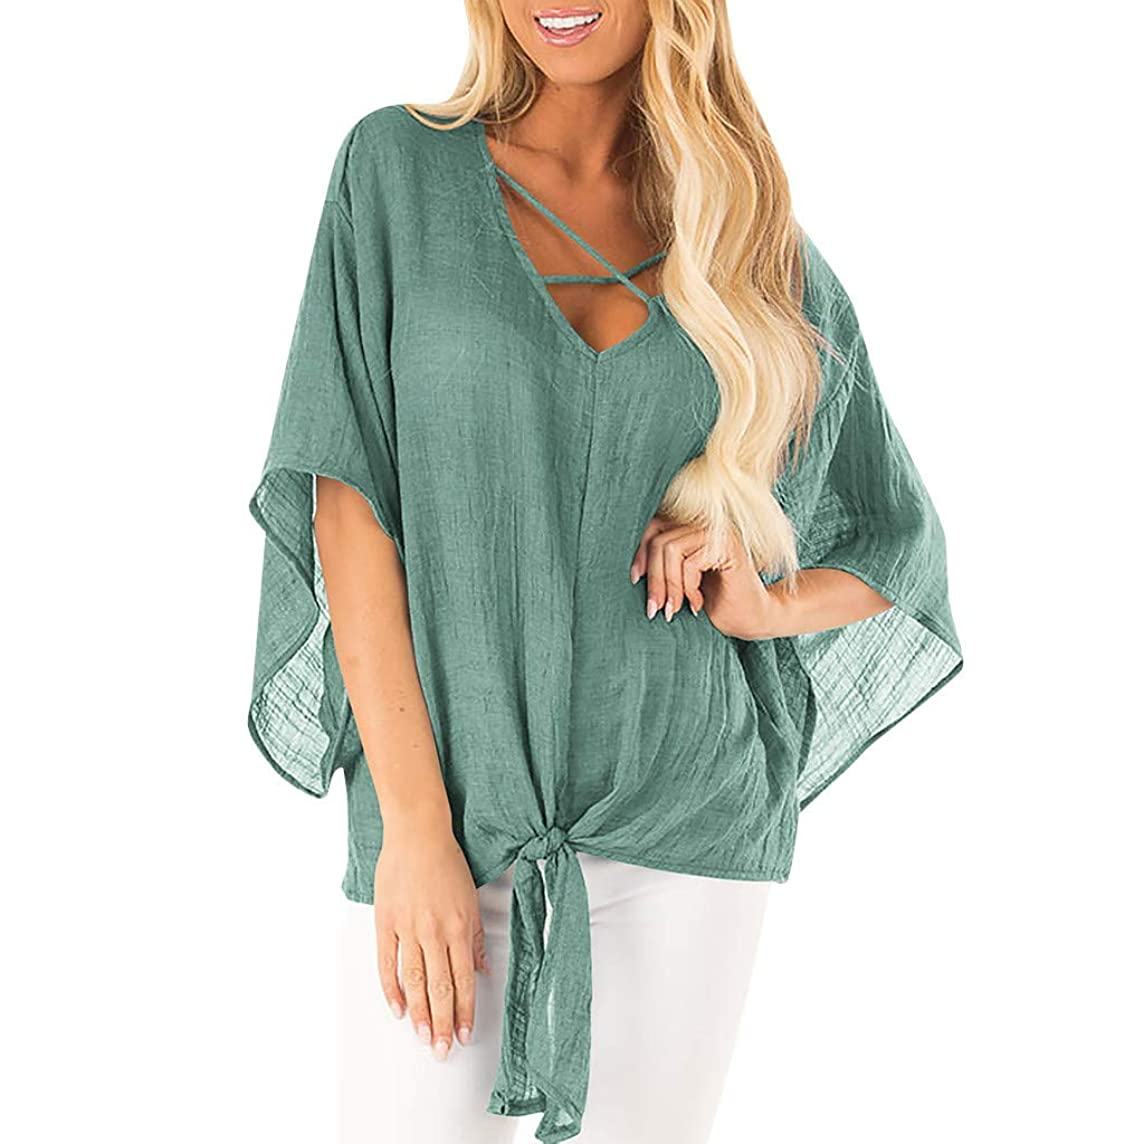 Women's Summer Short Sleeve T-Shirt Bat Sleeve Casual Cover Up Blouse Tops